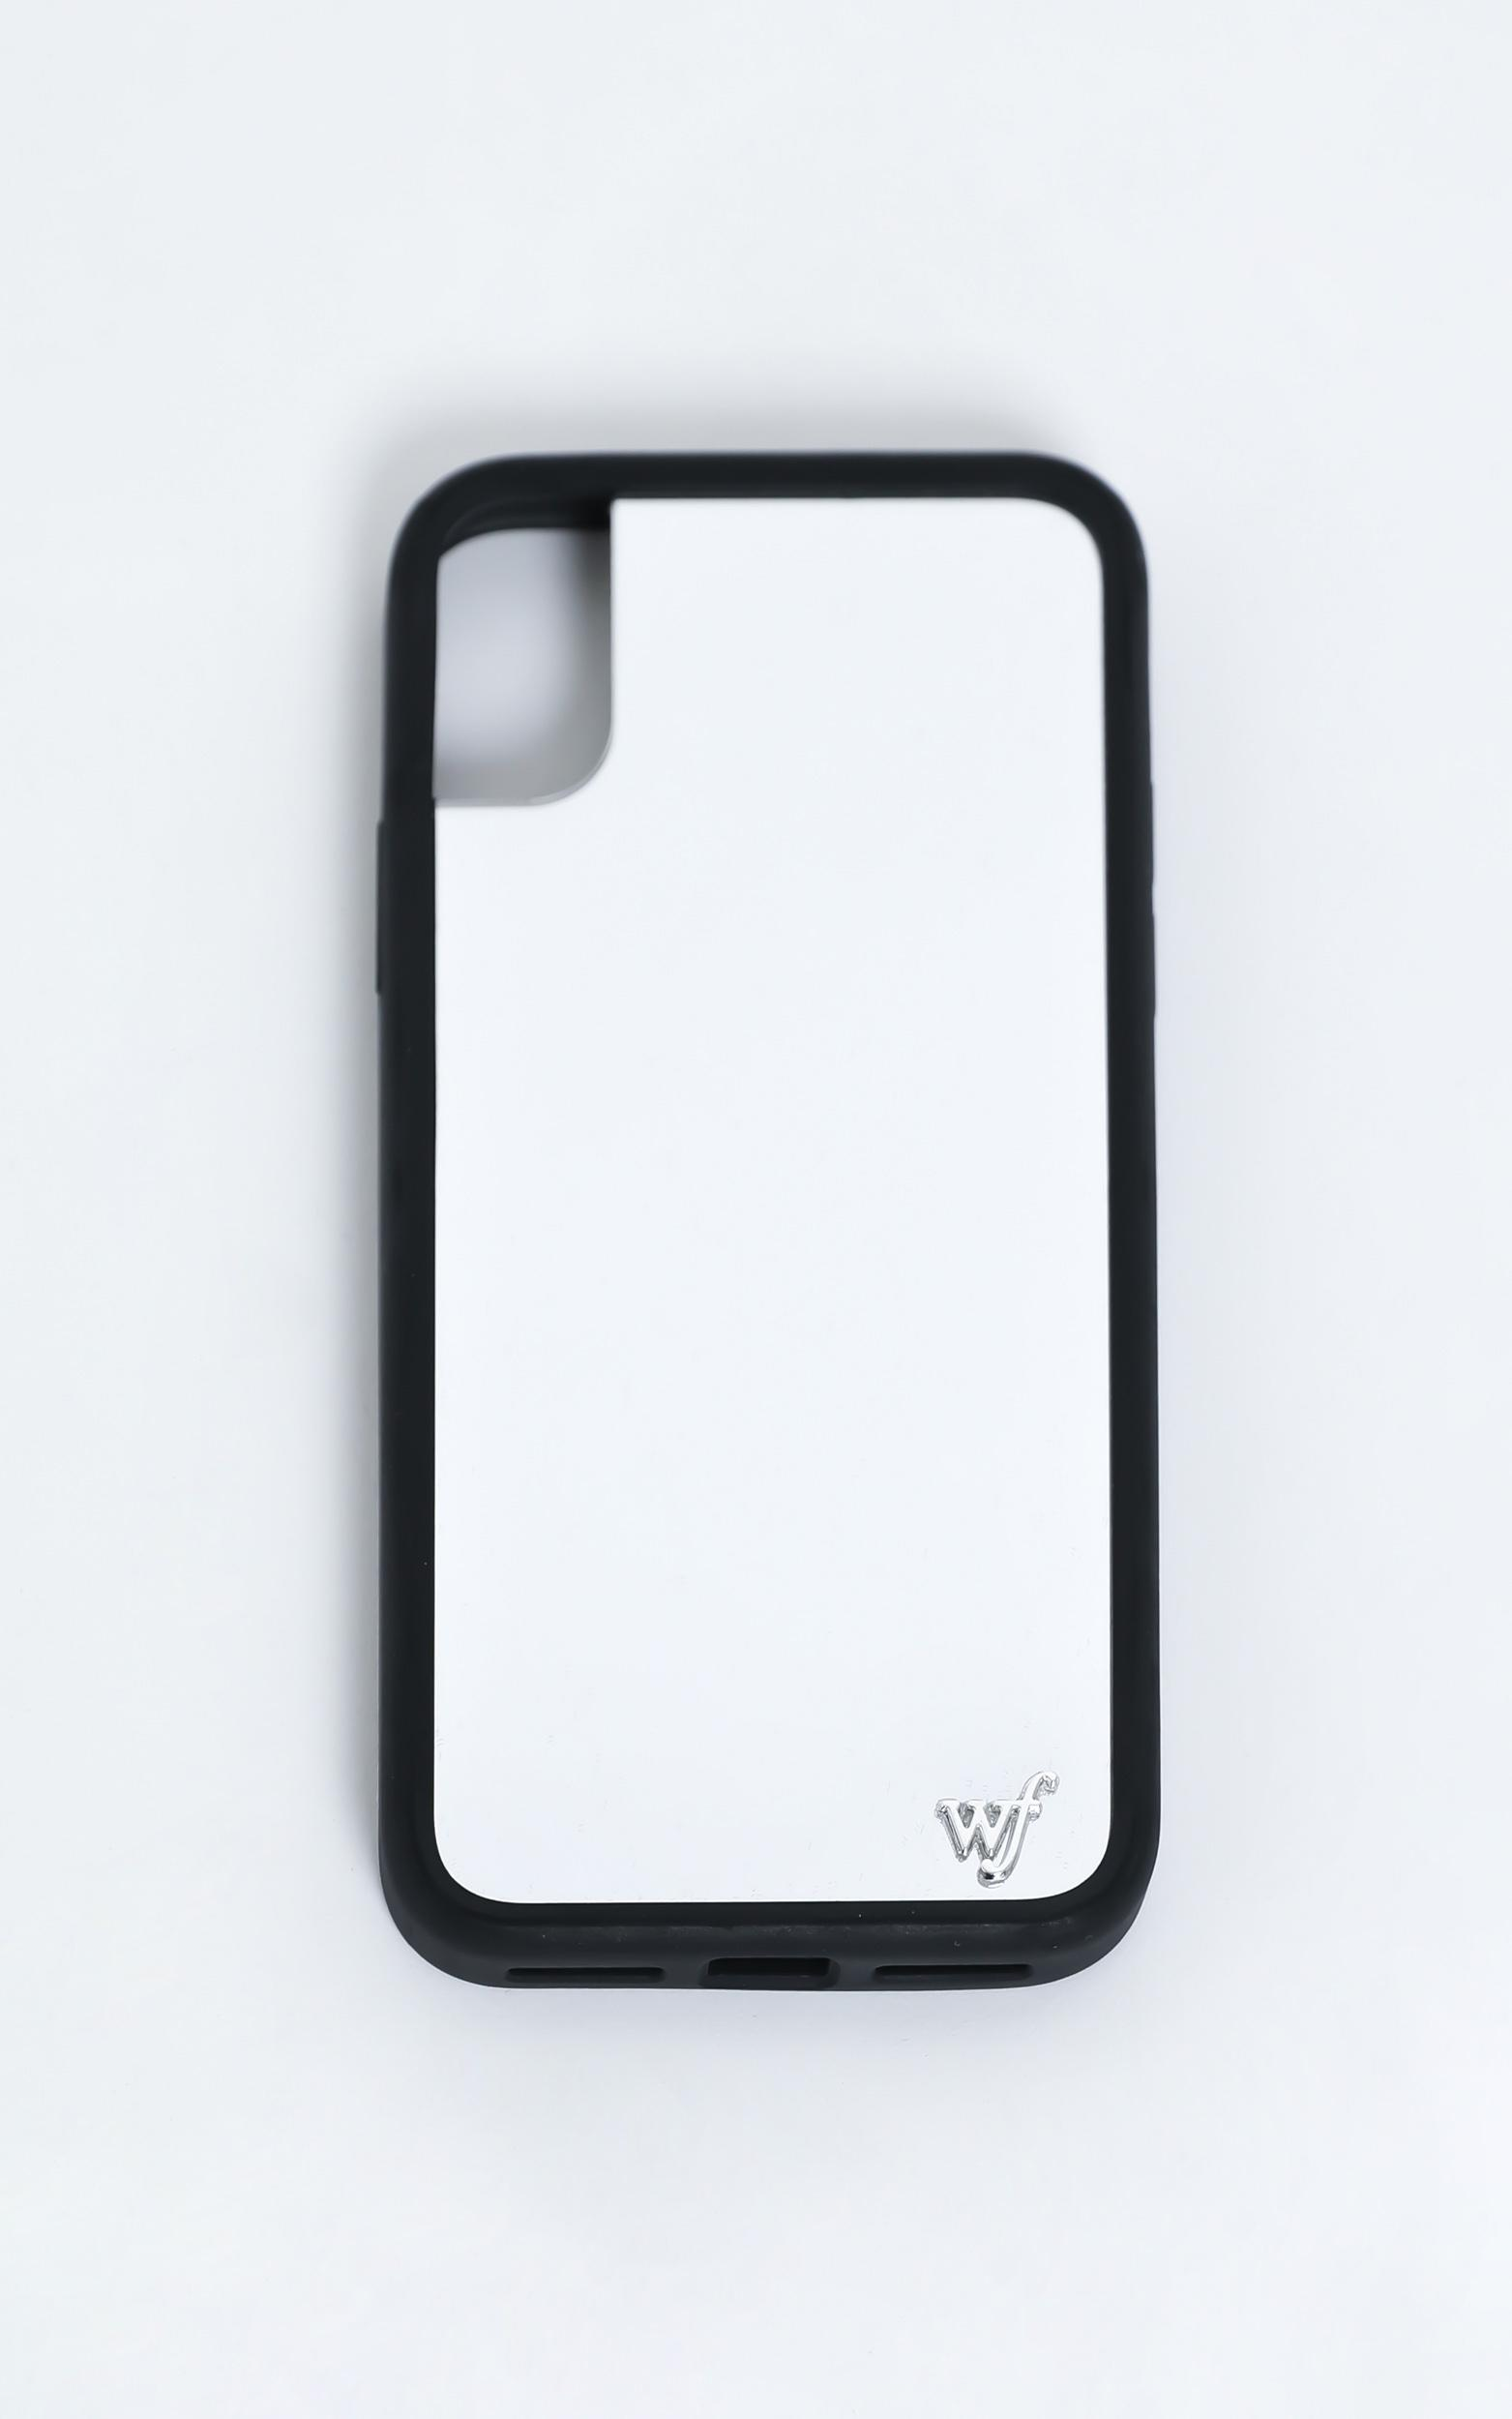 Wildflower - Iphone Case in Mirror Mirror - 8 Plus, Silver, hi-res image number null